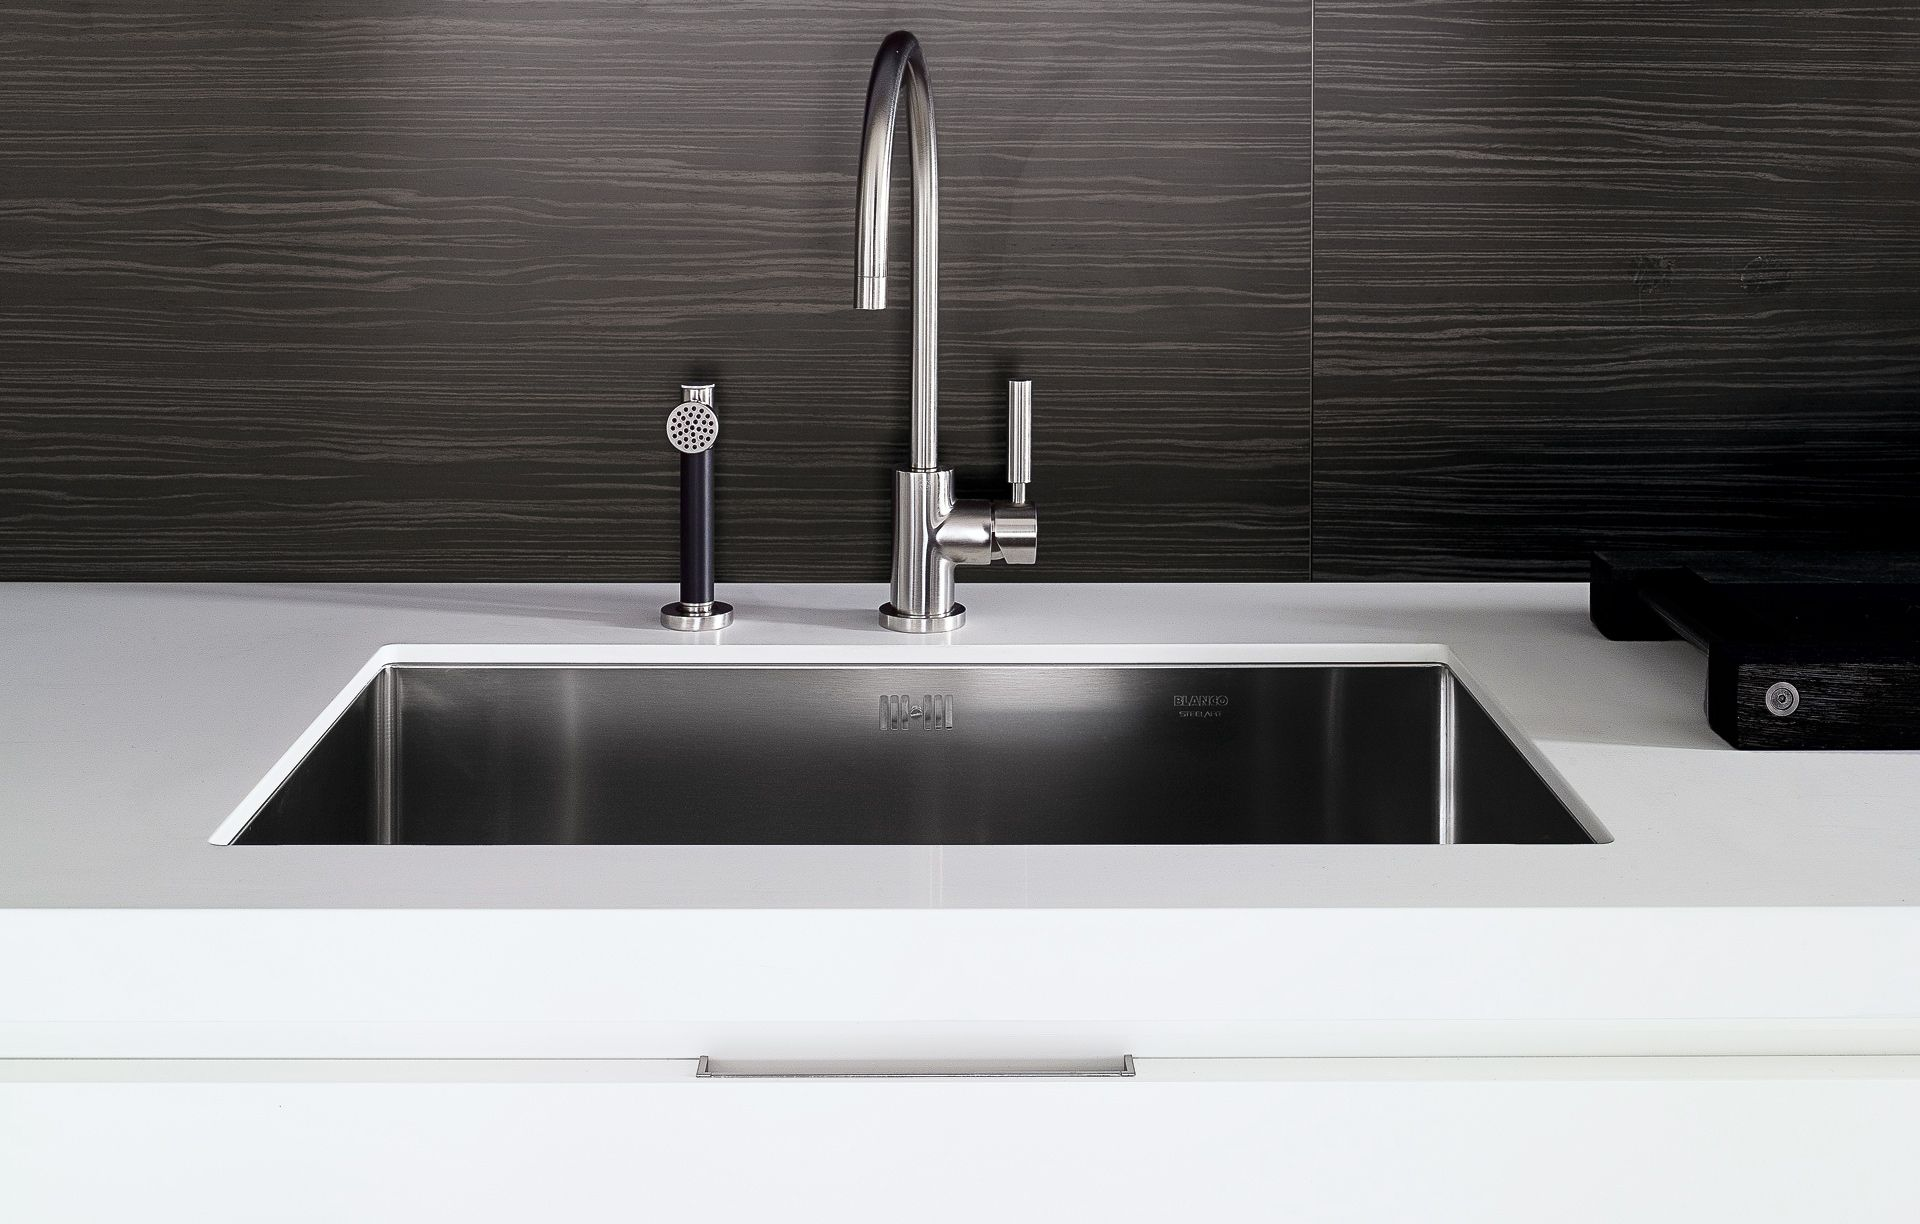 Stainless steel faucet sink on white quartz countertop   Kitchen in ...